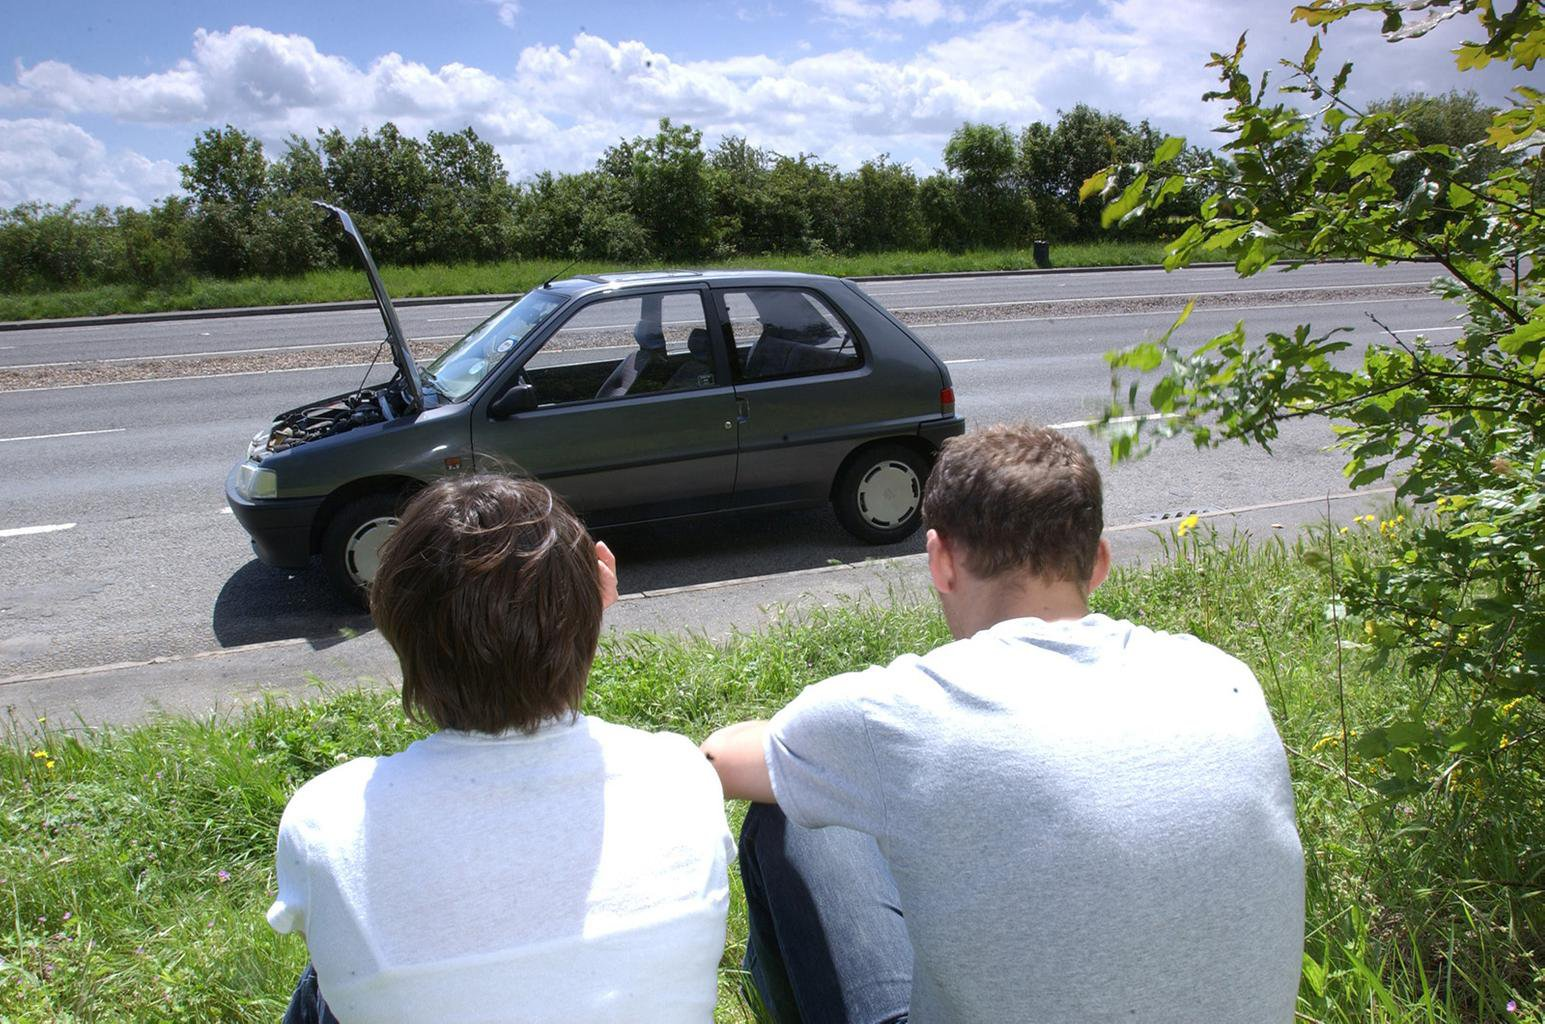 What to do if you break down on the motorway